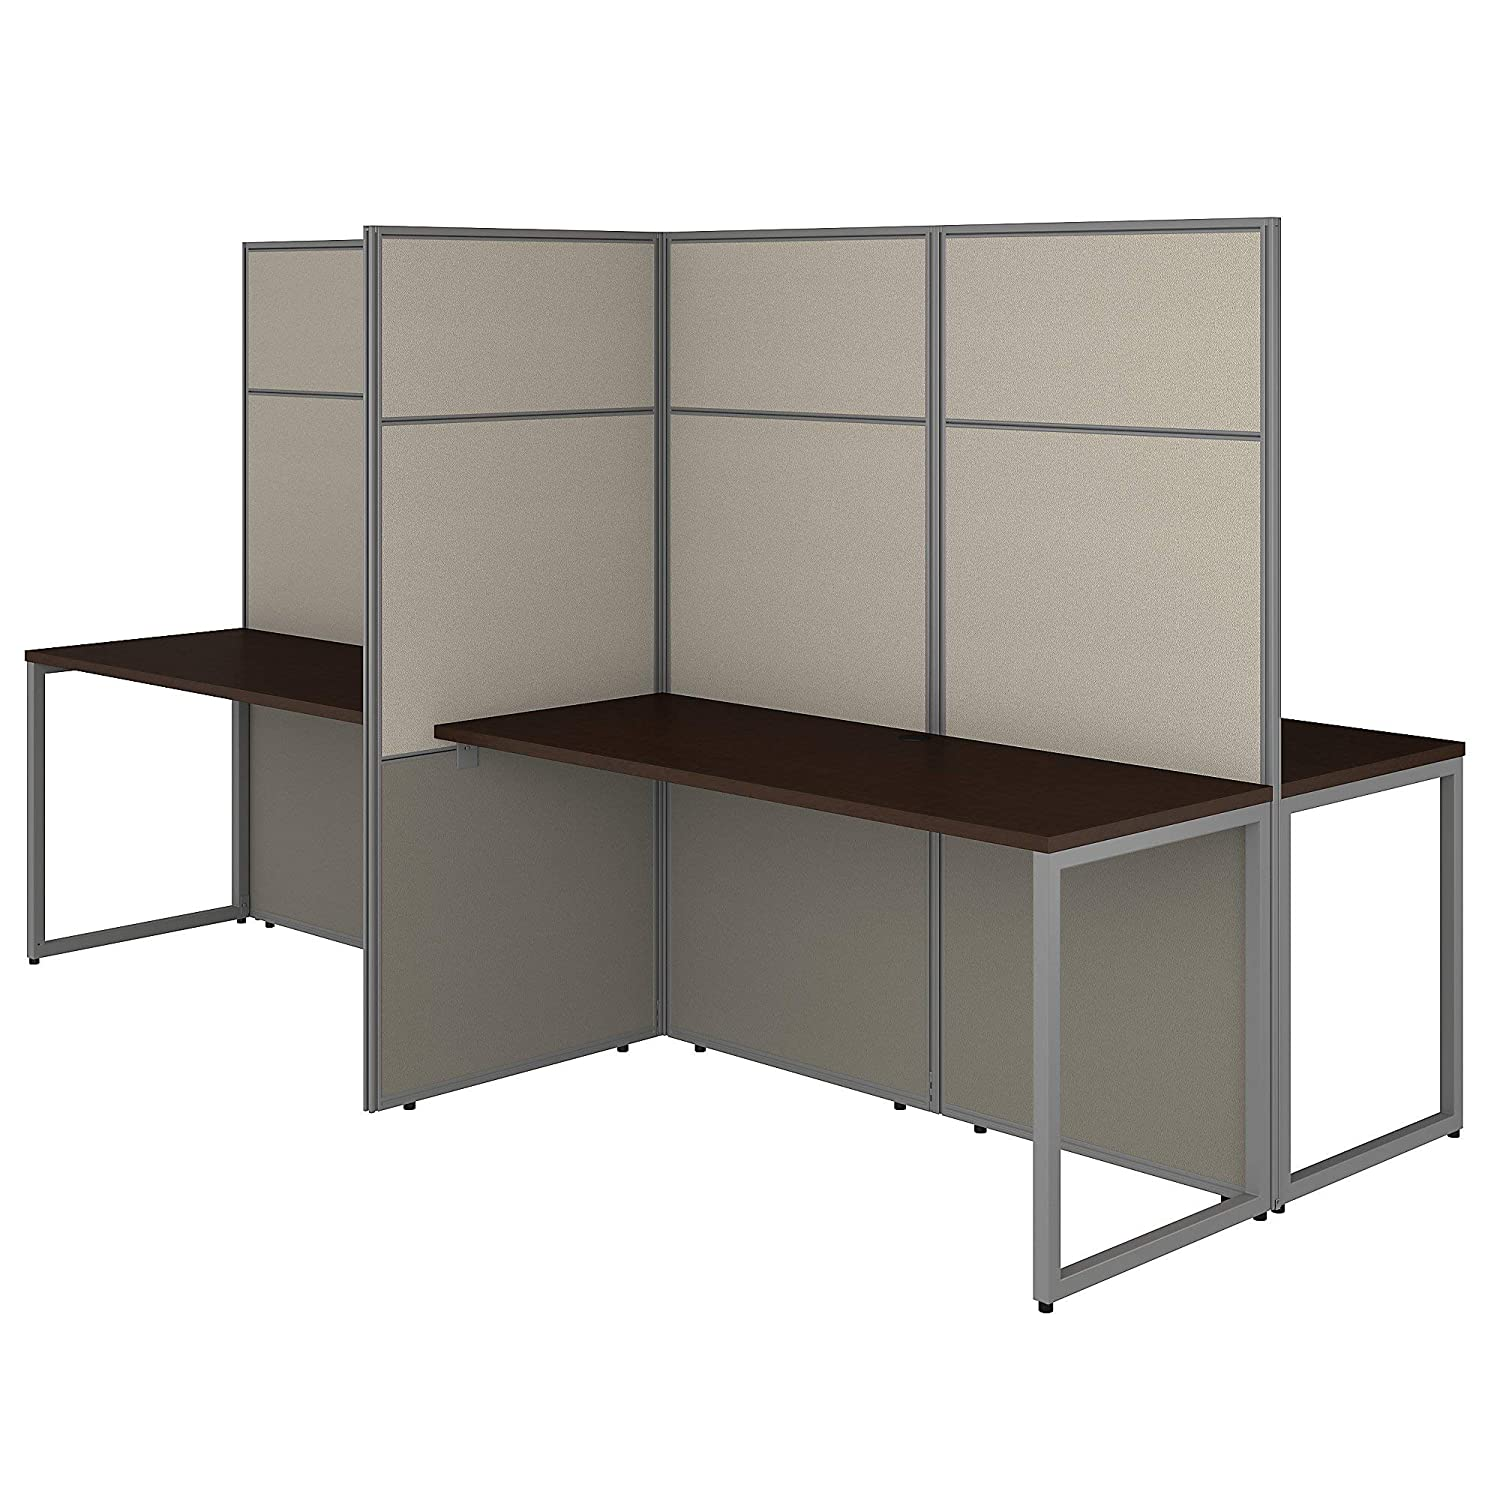 Bush Business Furniture EODH660MR-03K Easy Office 4 Person Cubicle Desk Workstation with 66H Panels, 60Wx60H, Mocha Cherry